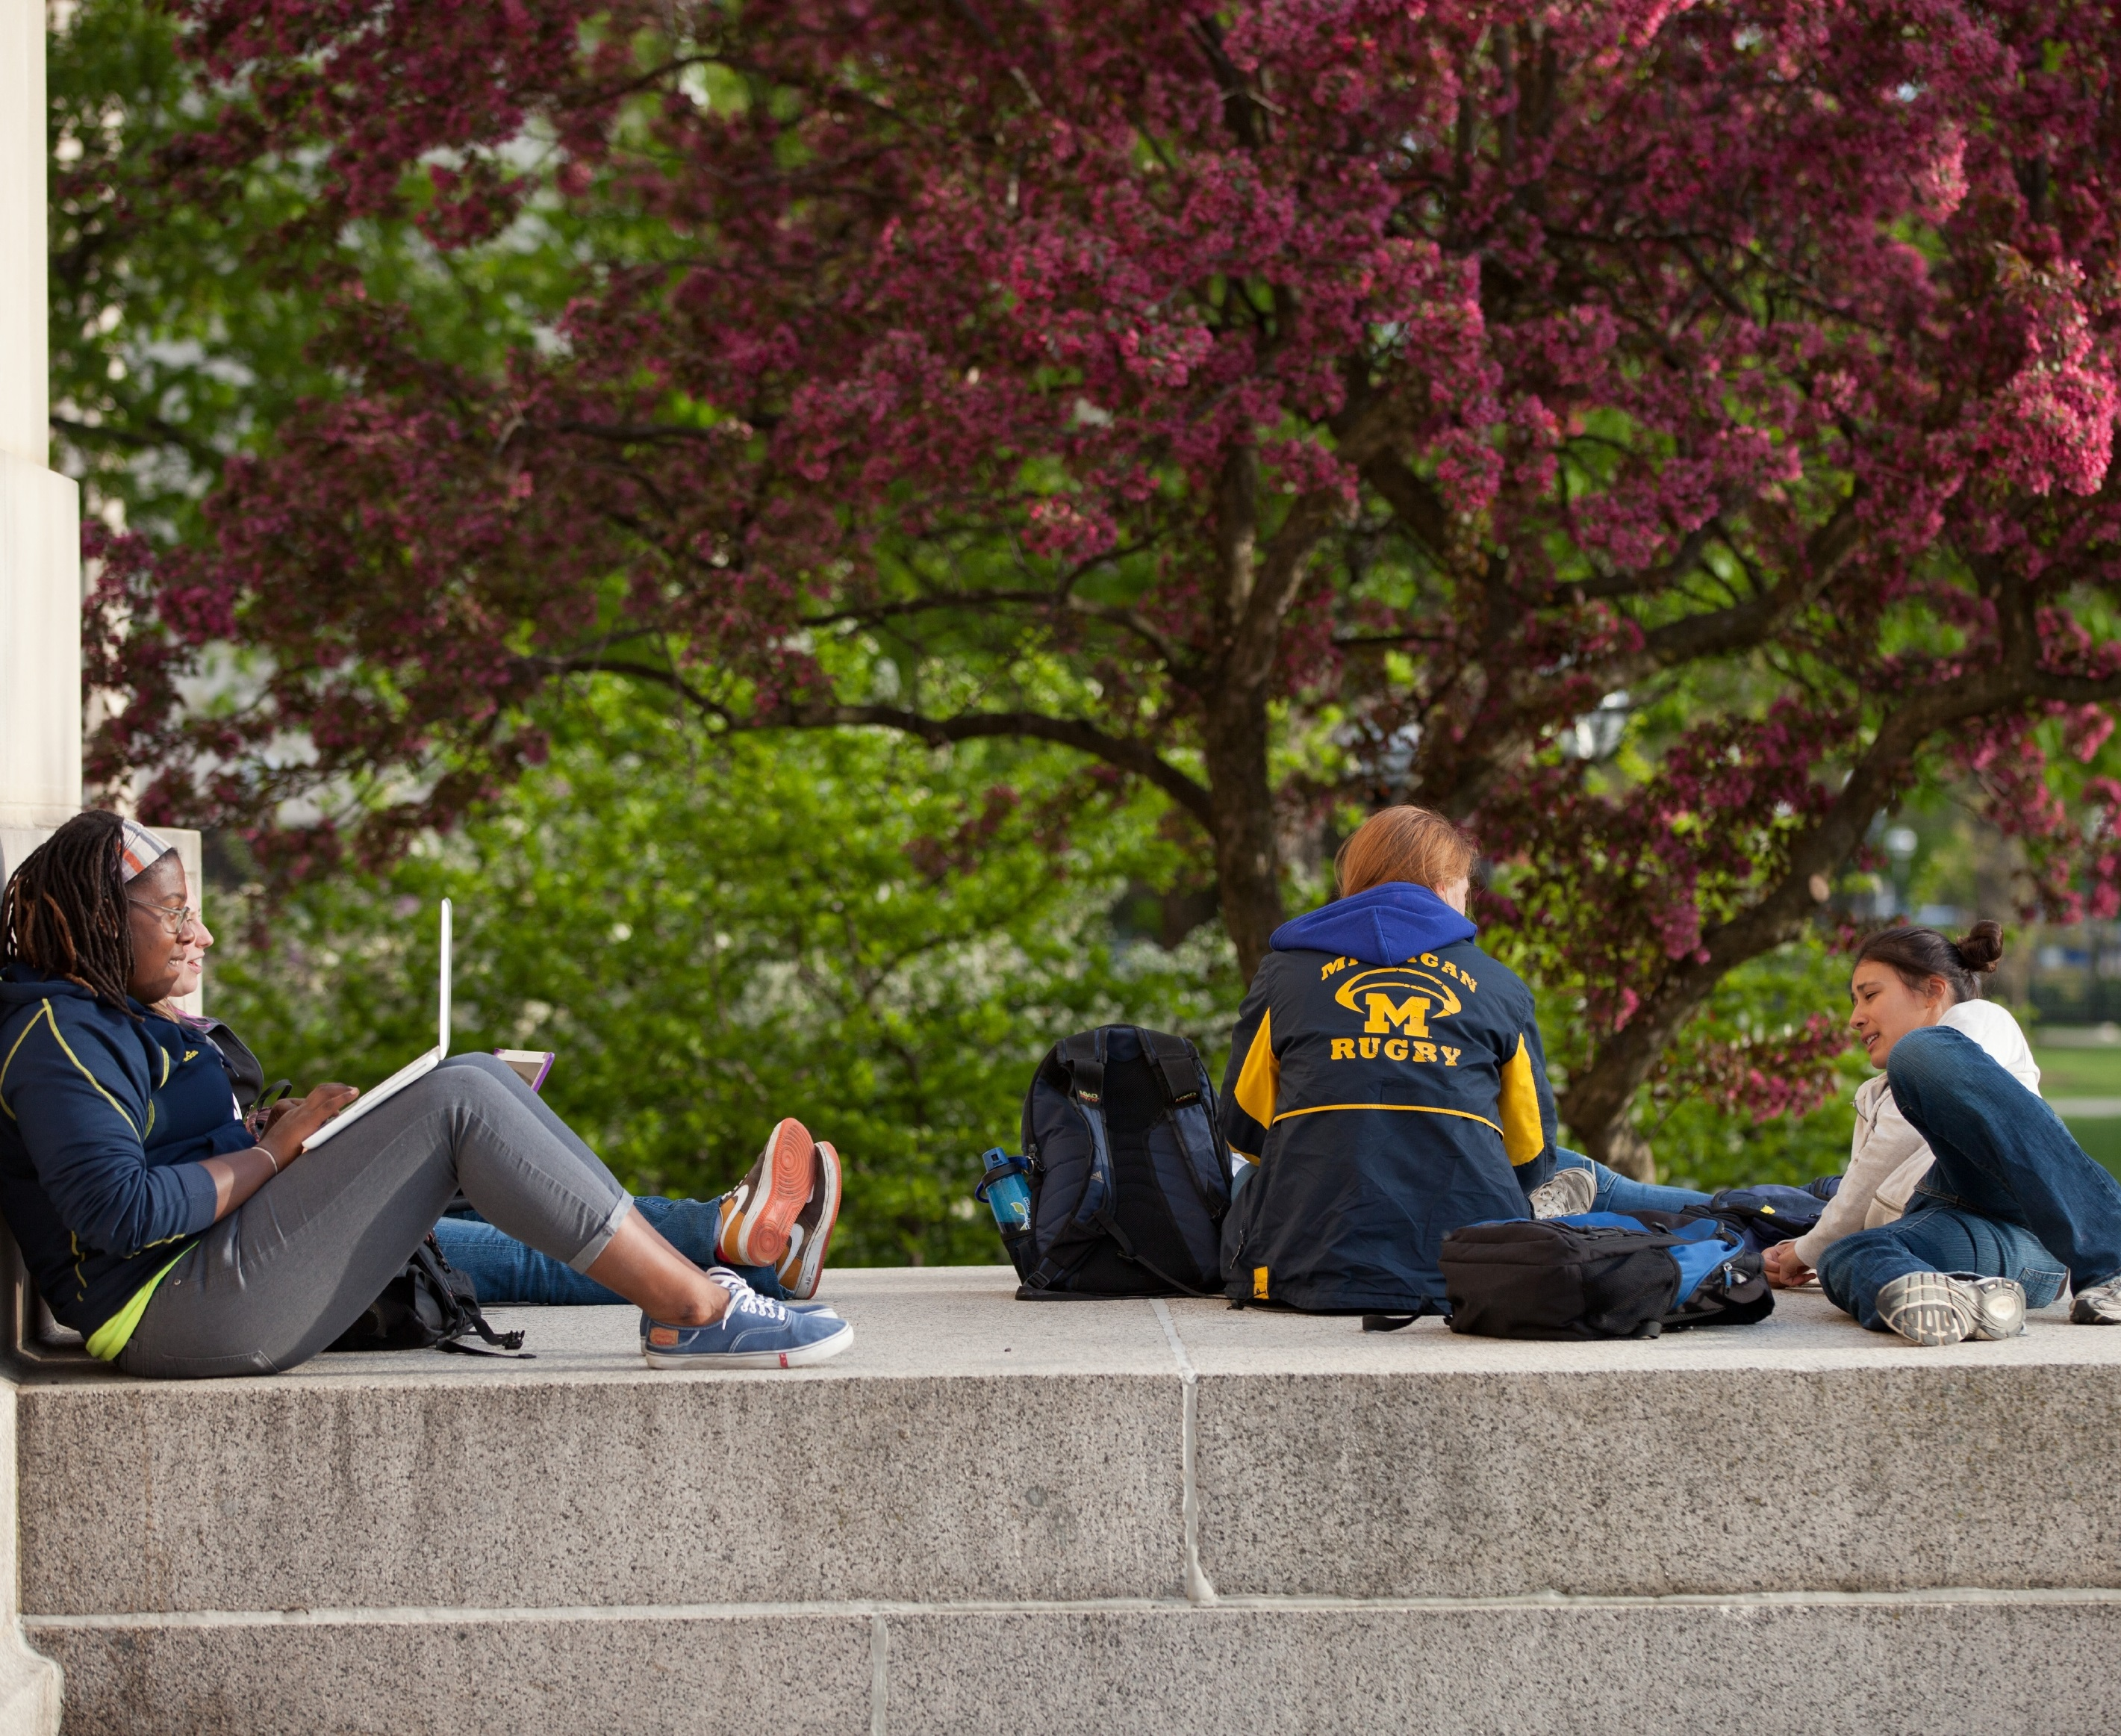 Members of a U-M student organization talk together outside.